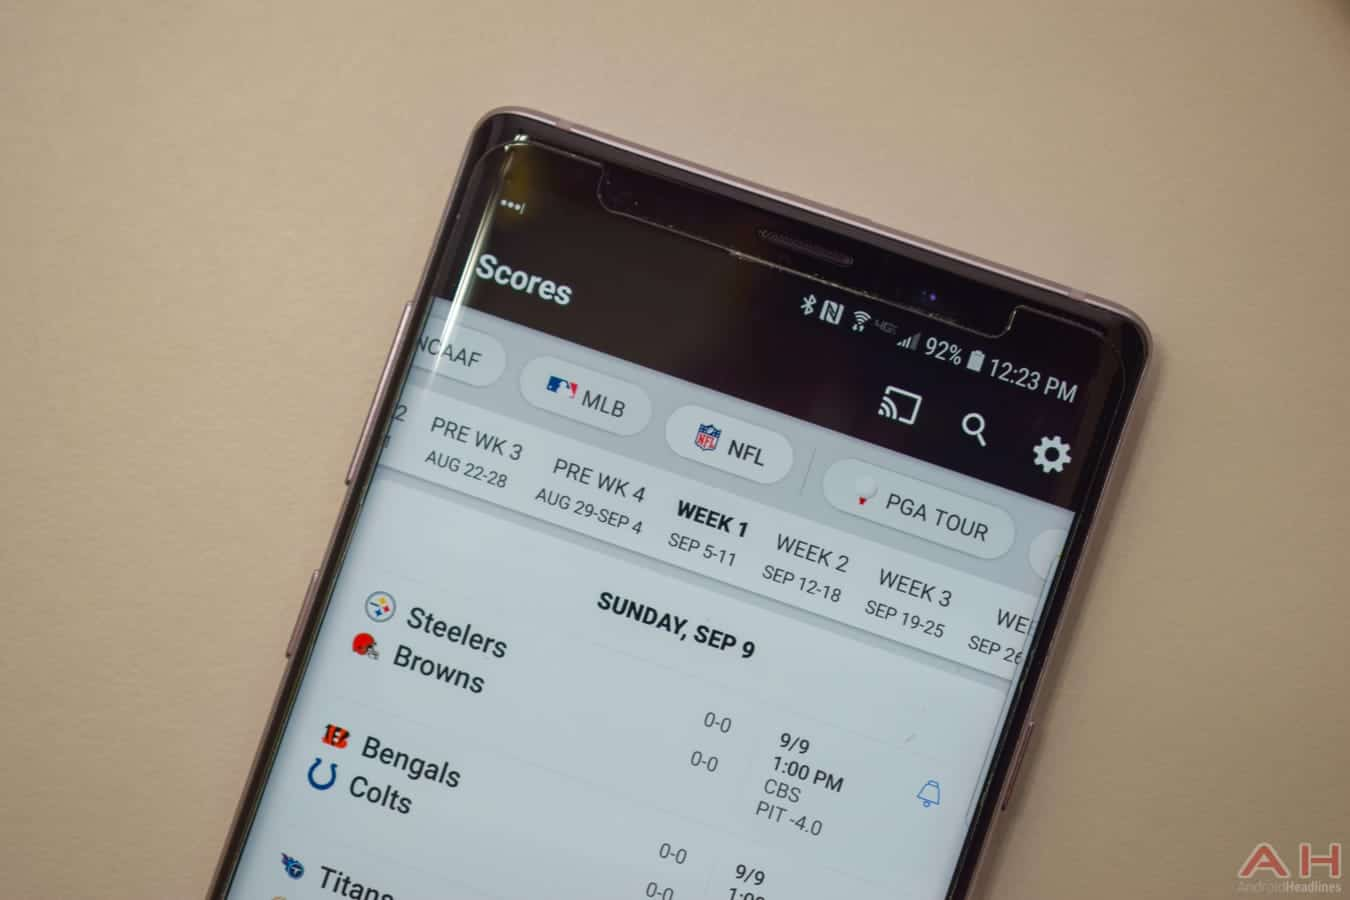 How To Watch The 2018-19 NFL Football Season On Android